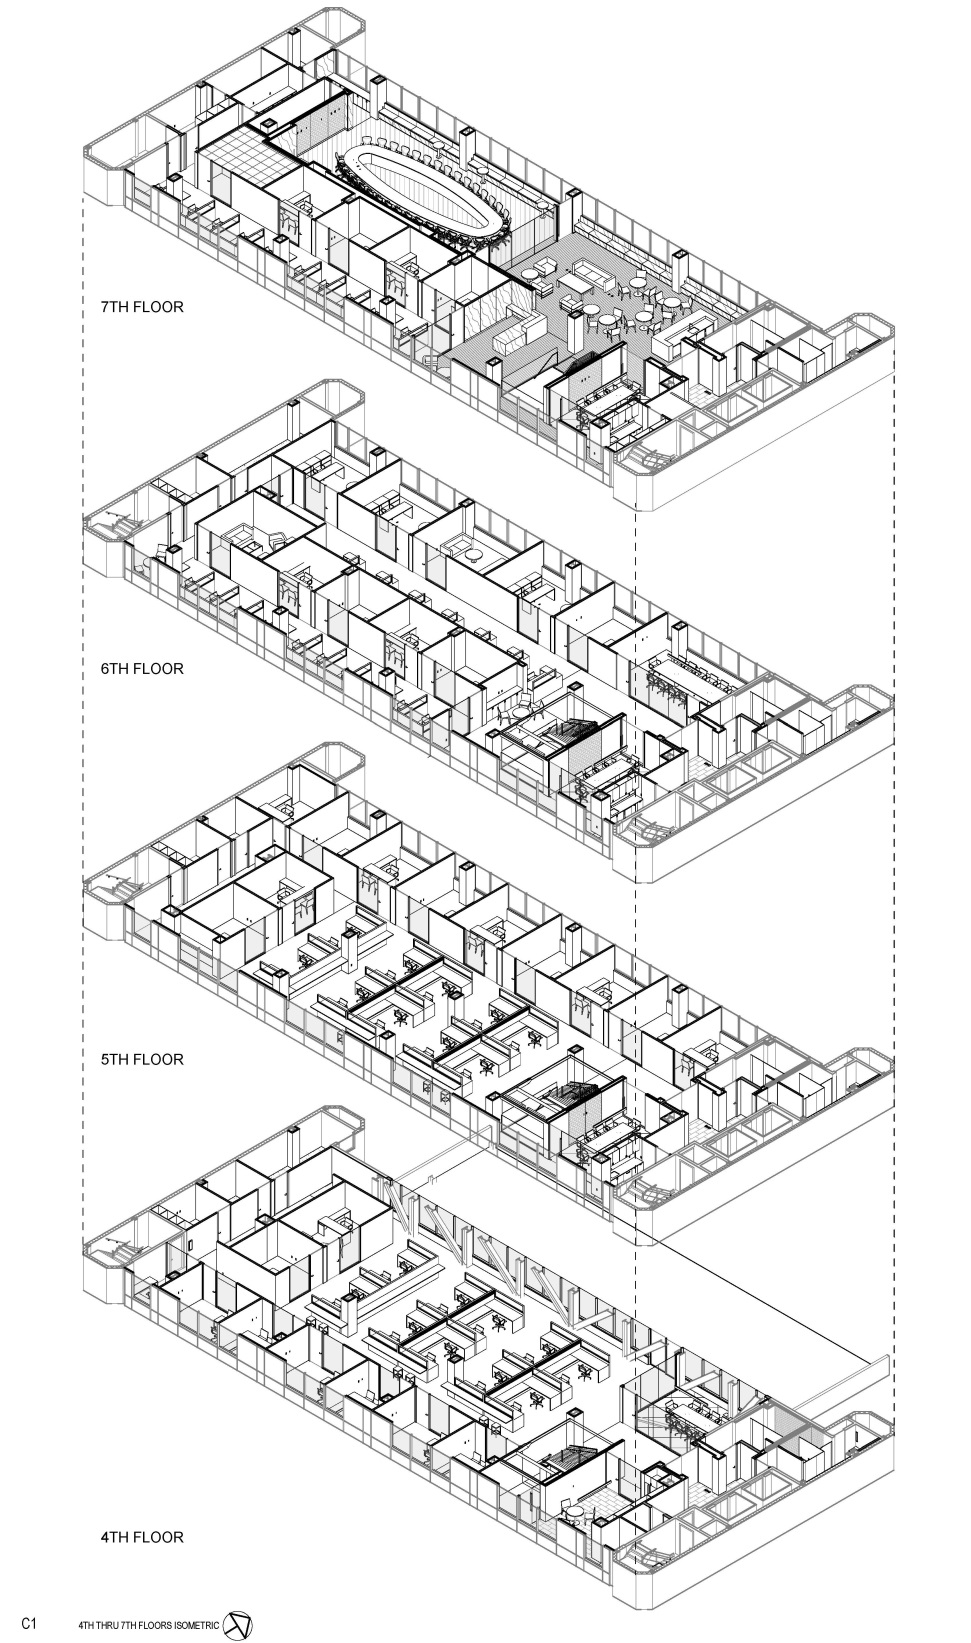 Exploded Isometric of Floors 4-7